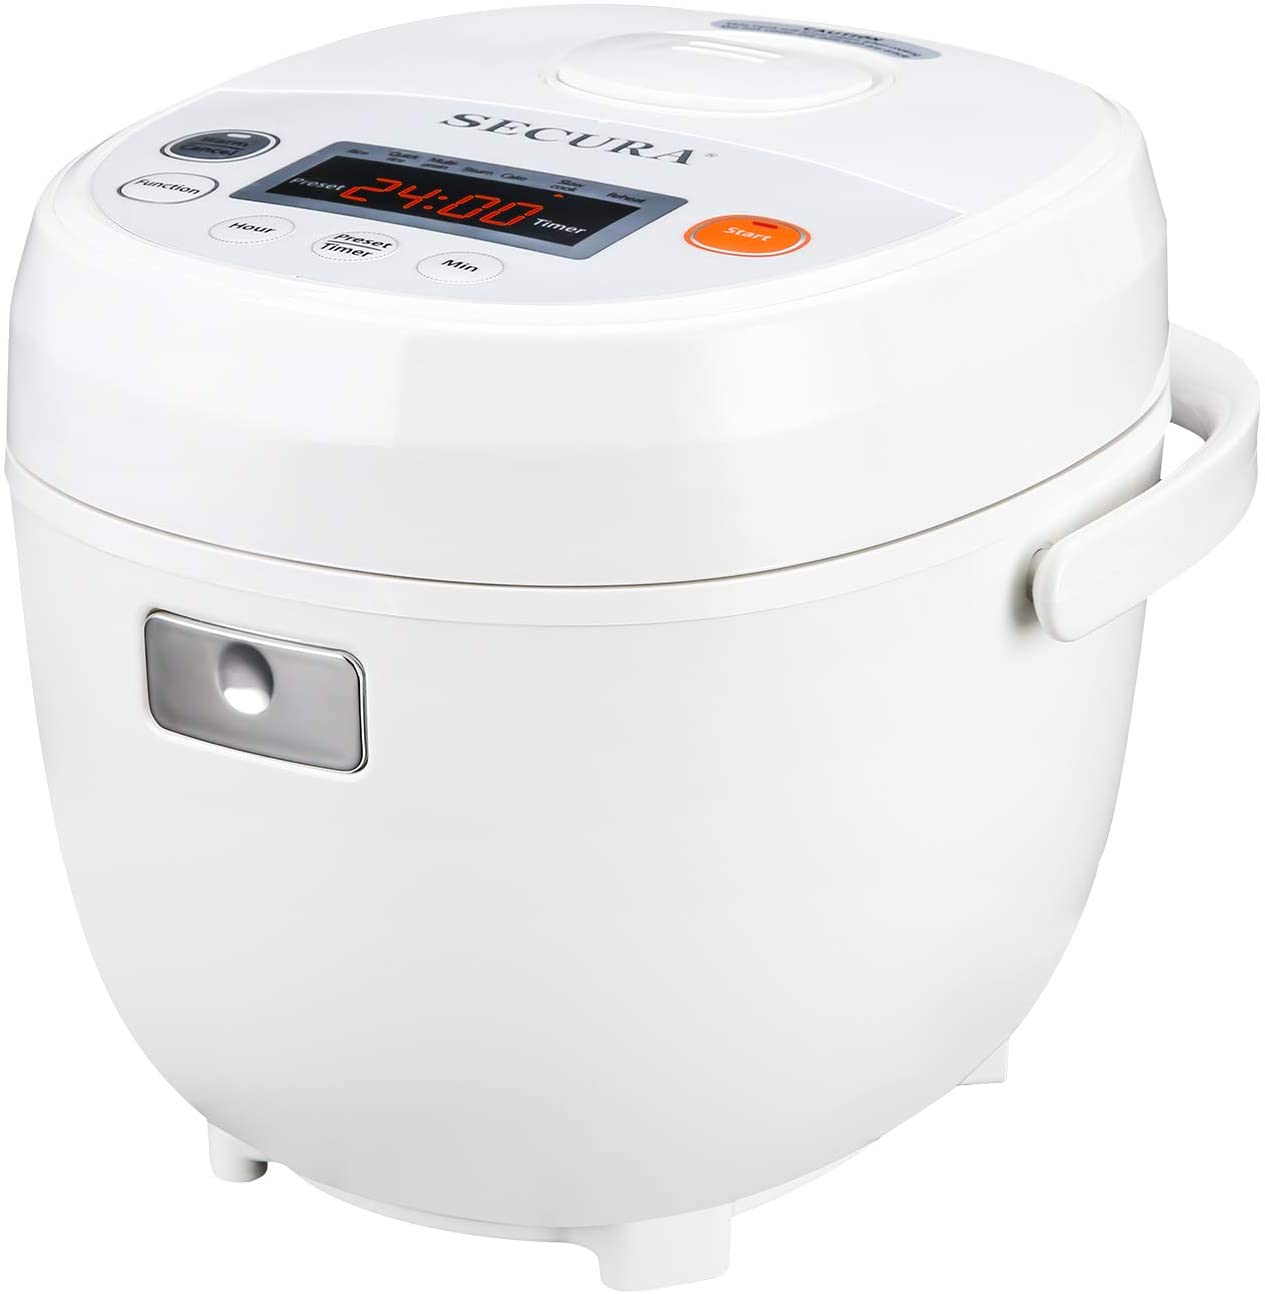 Secura Premium 4-Cup 7-in-1 Rice Cooker